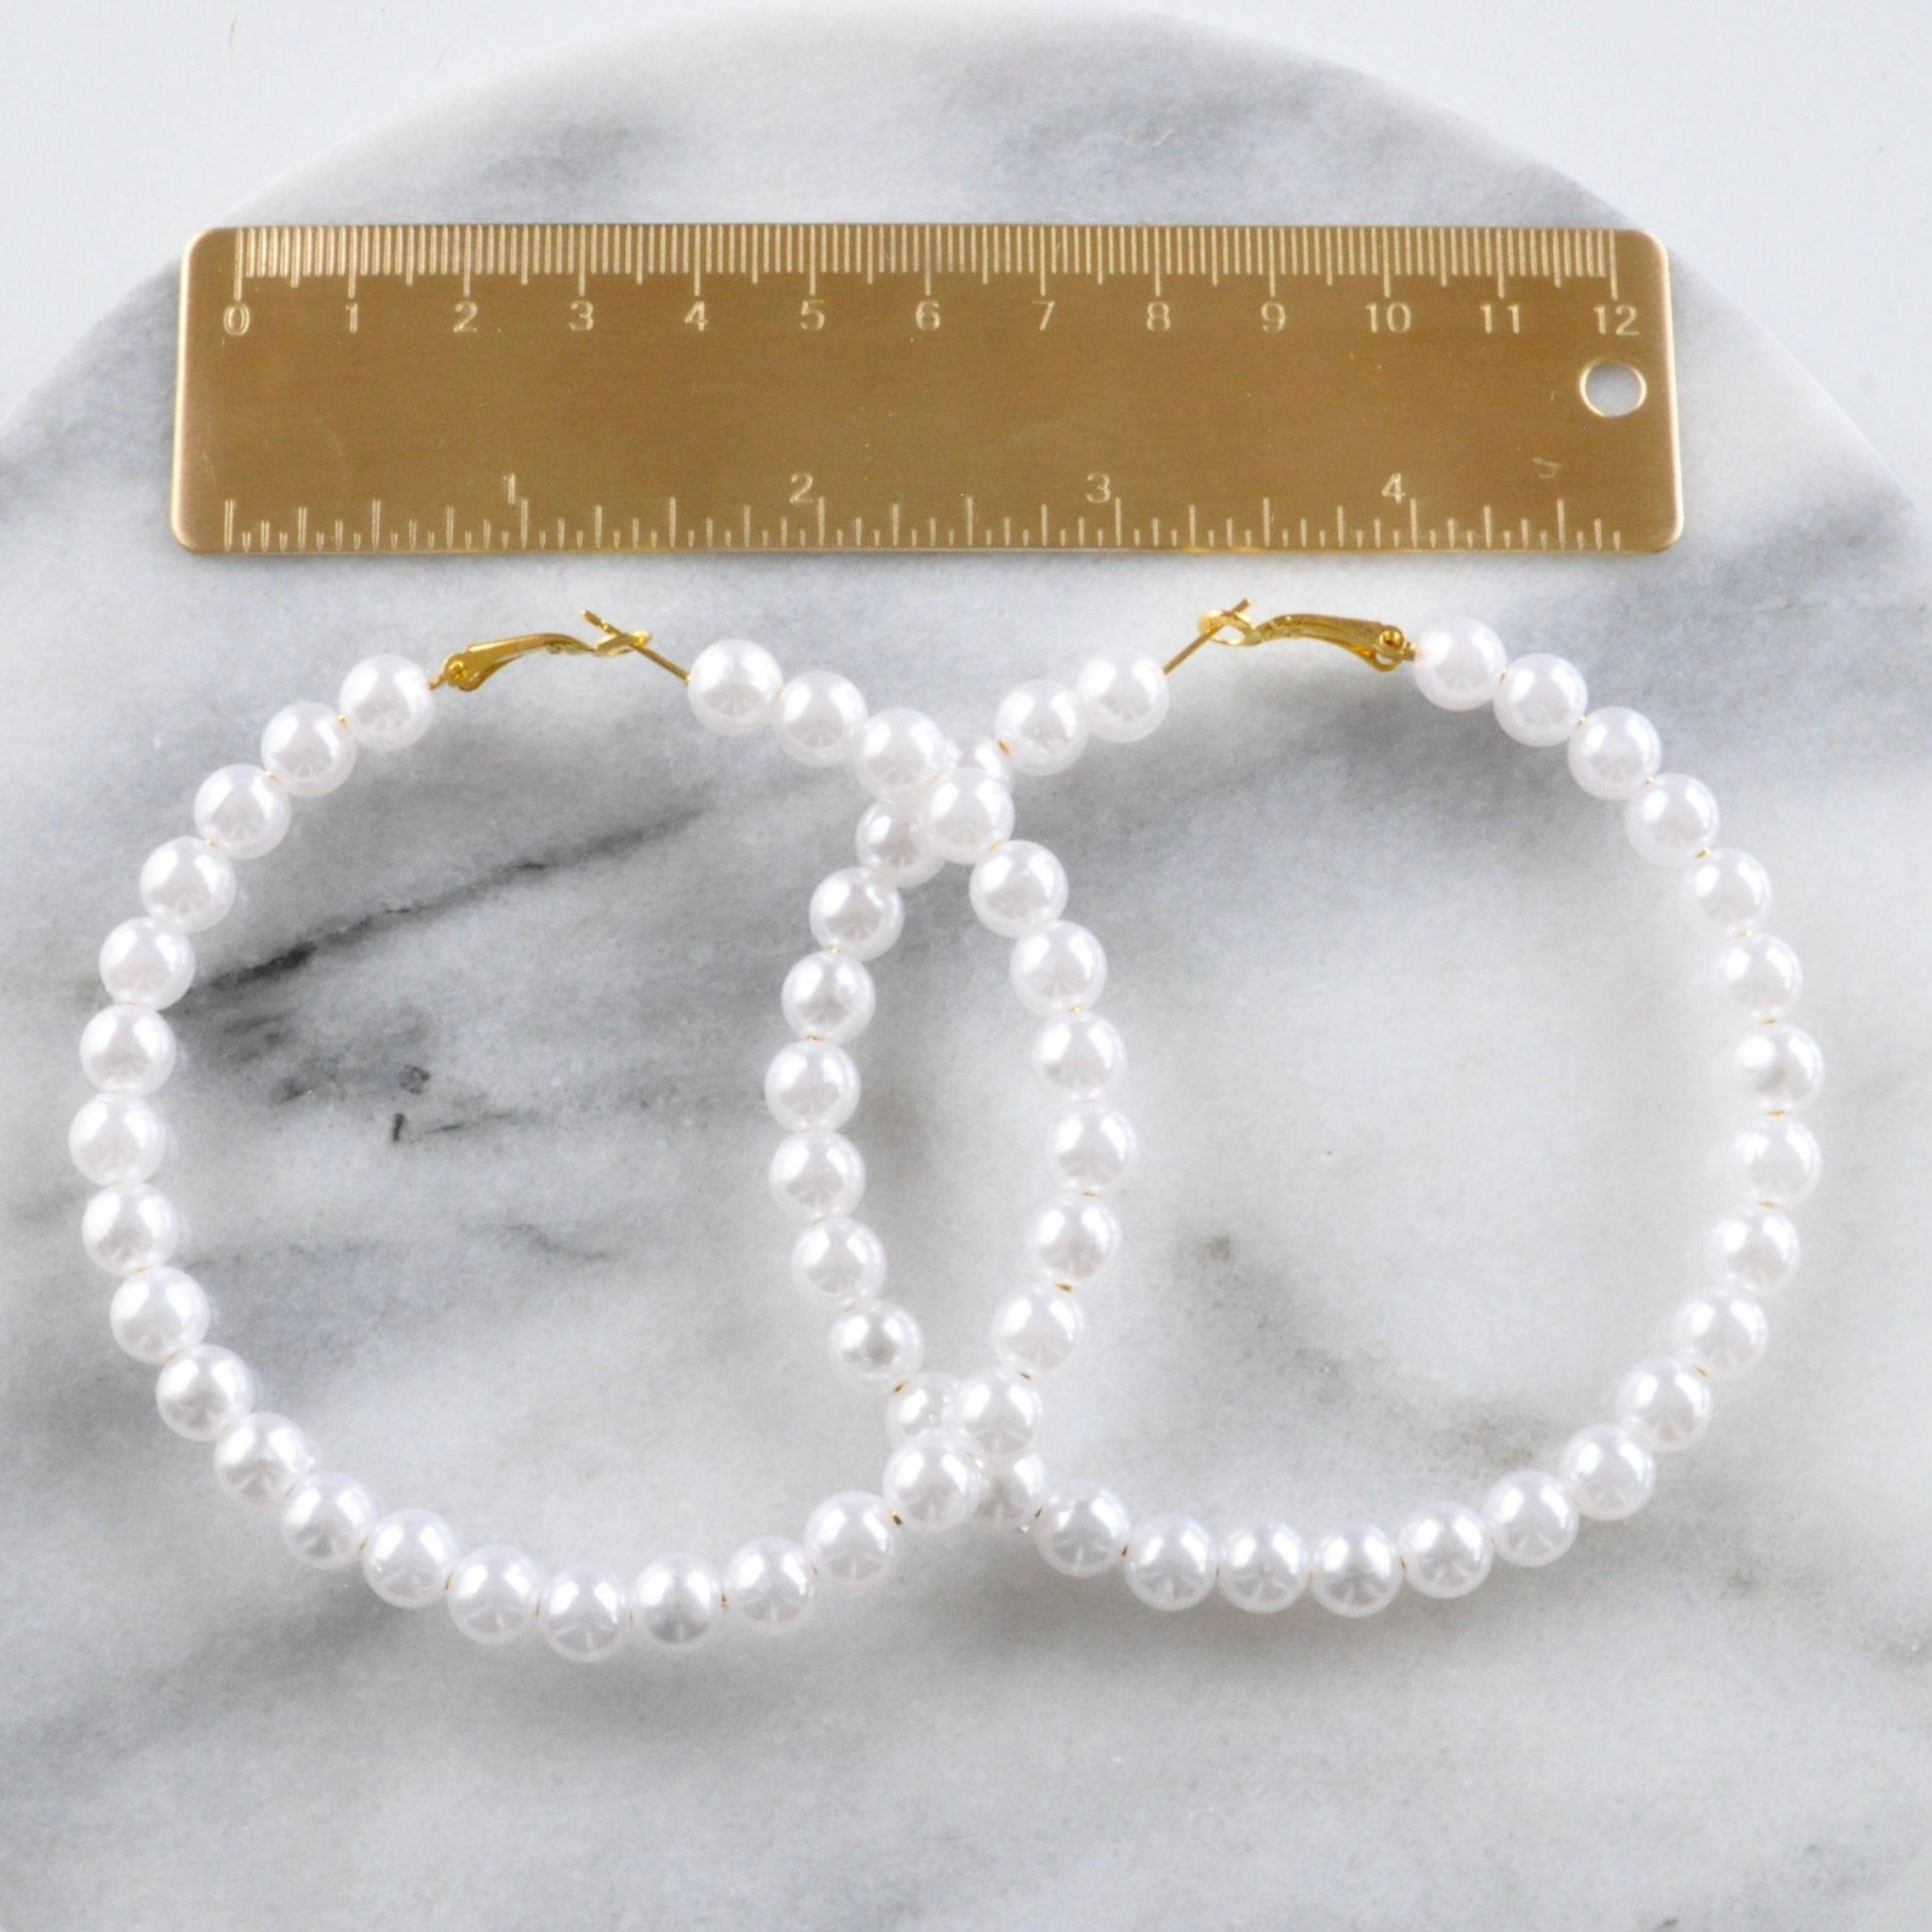 Libby & Smee Huge Pearl Hoops with ruler for scale